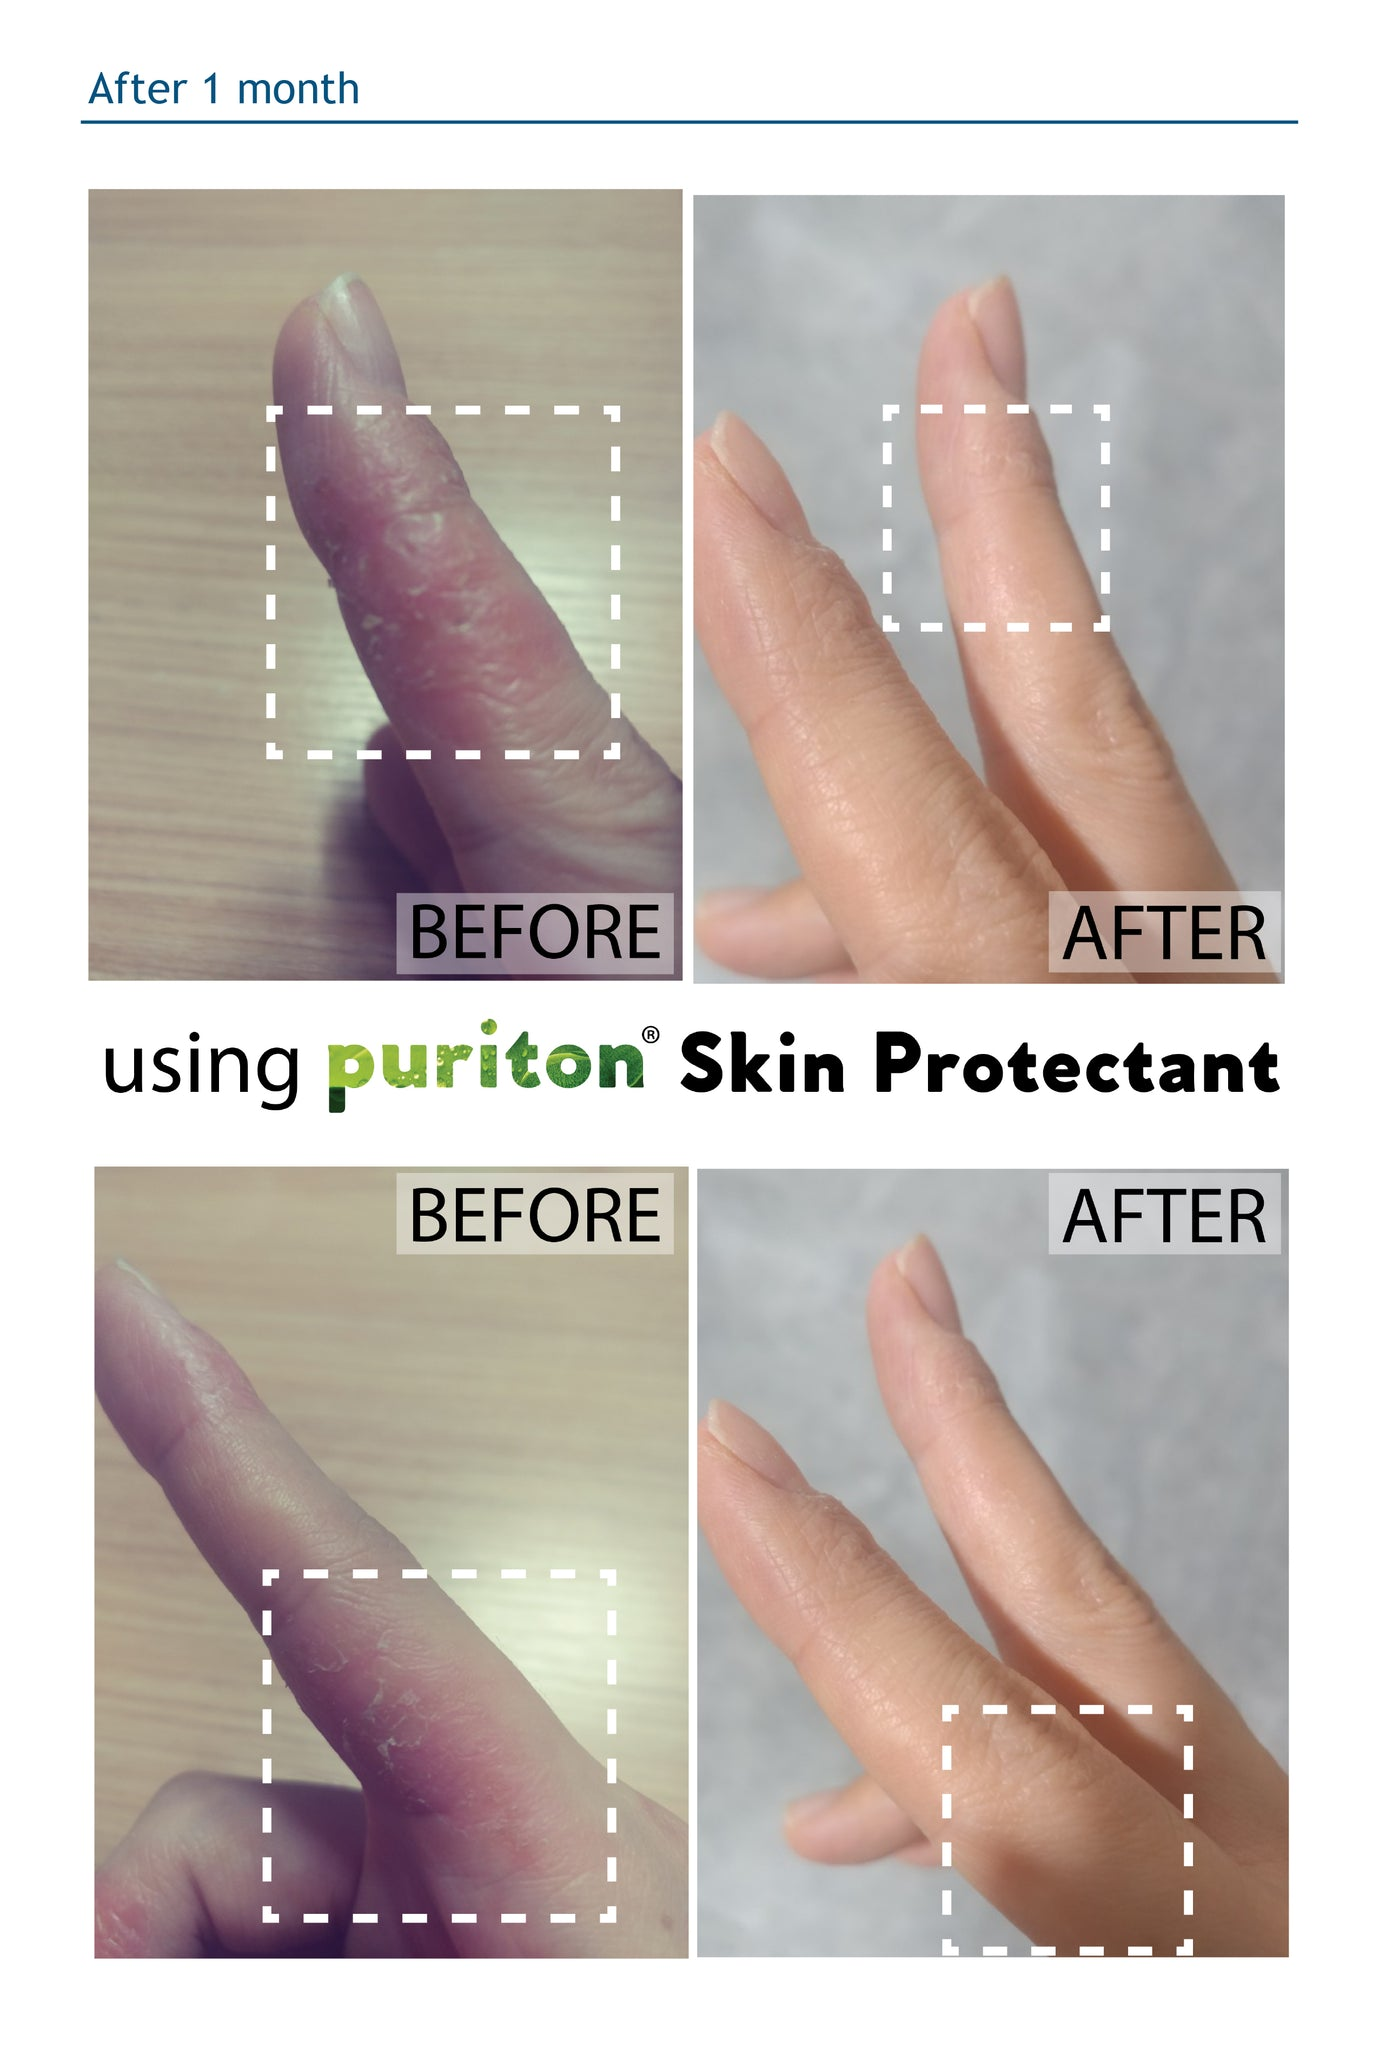 Puriton Mineral water skin protectant